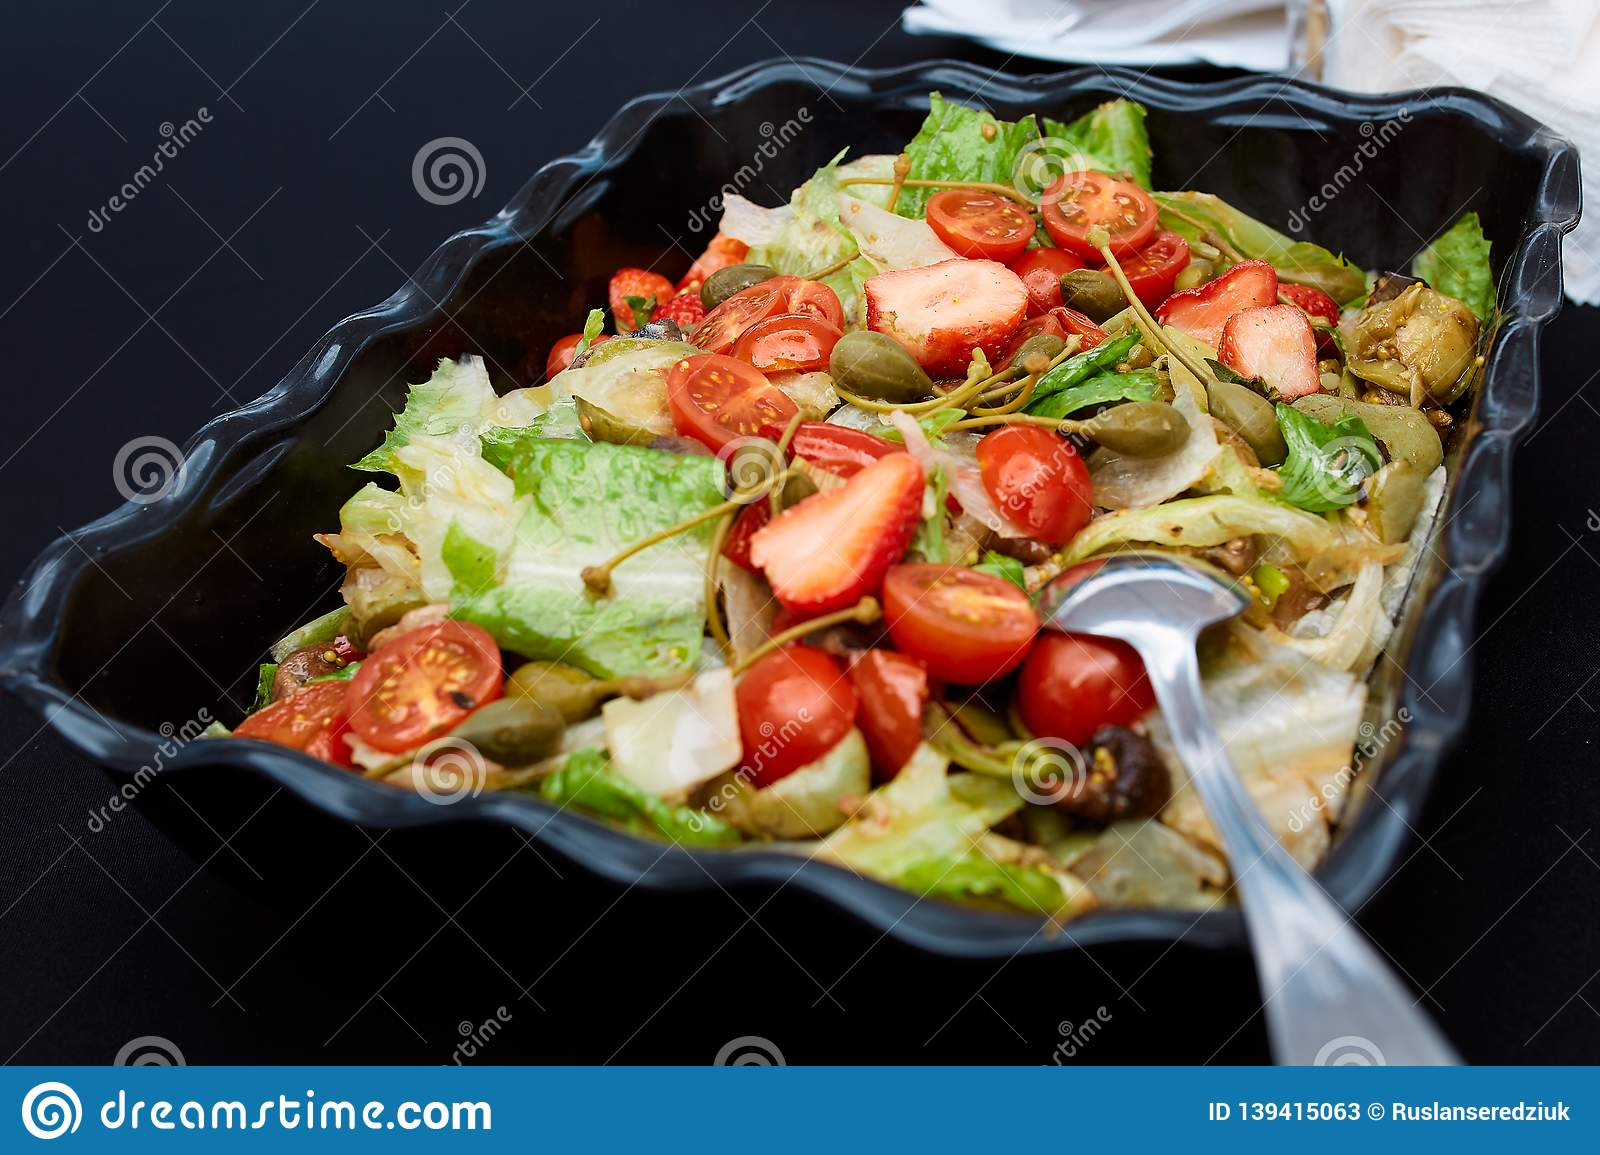 Vegetable salad made of tomatoes, lettuce leaves